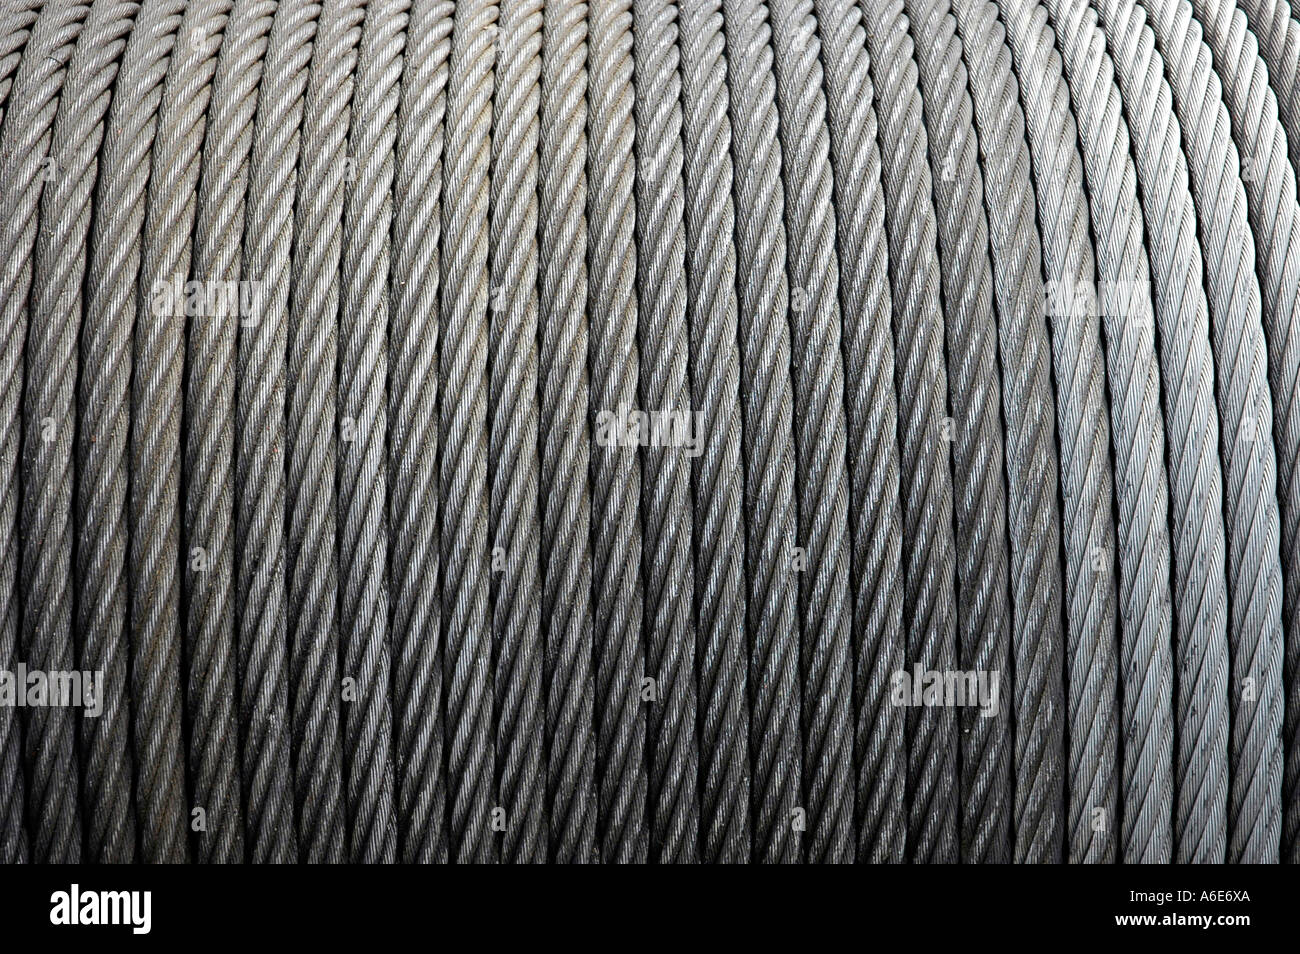 Unrolled wire-cables, wire-cable, roll, steel cable, draw works ...